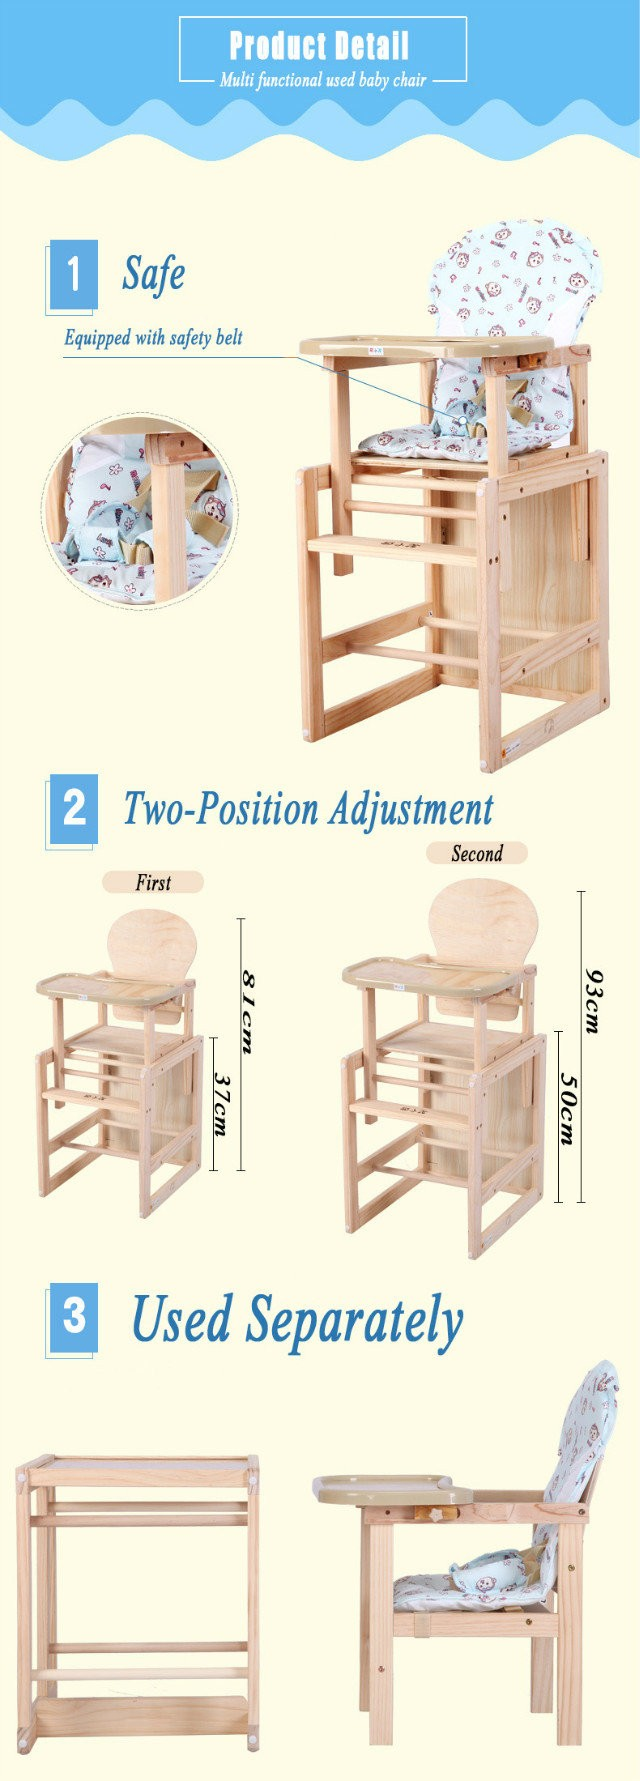 Fabulous Brand Hope Baby Dining Chair Type Baby Wooden High Chair Buy Baby Chair Baby Dining Chair Hope Baby Chair Product On Alibaba Com Andrewgaddart Wooden Chair Designs For Living Room Andrewgaddartcom